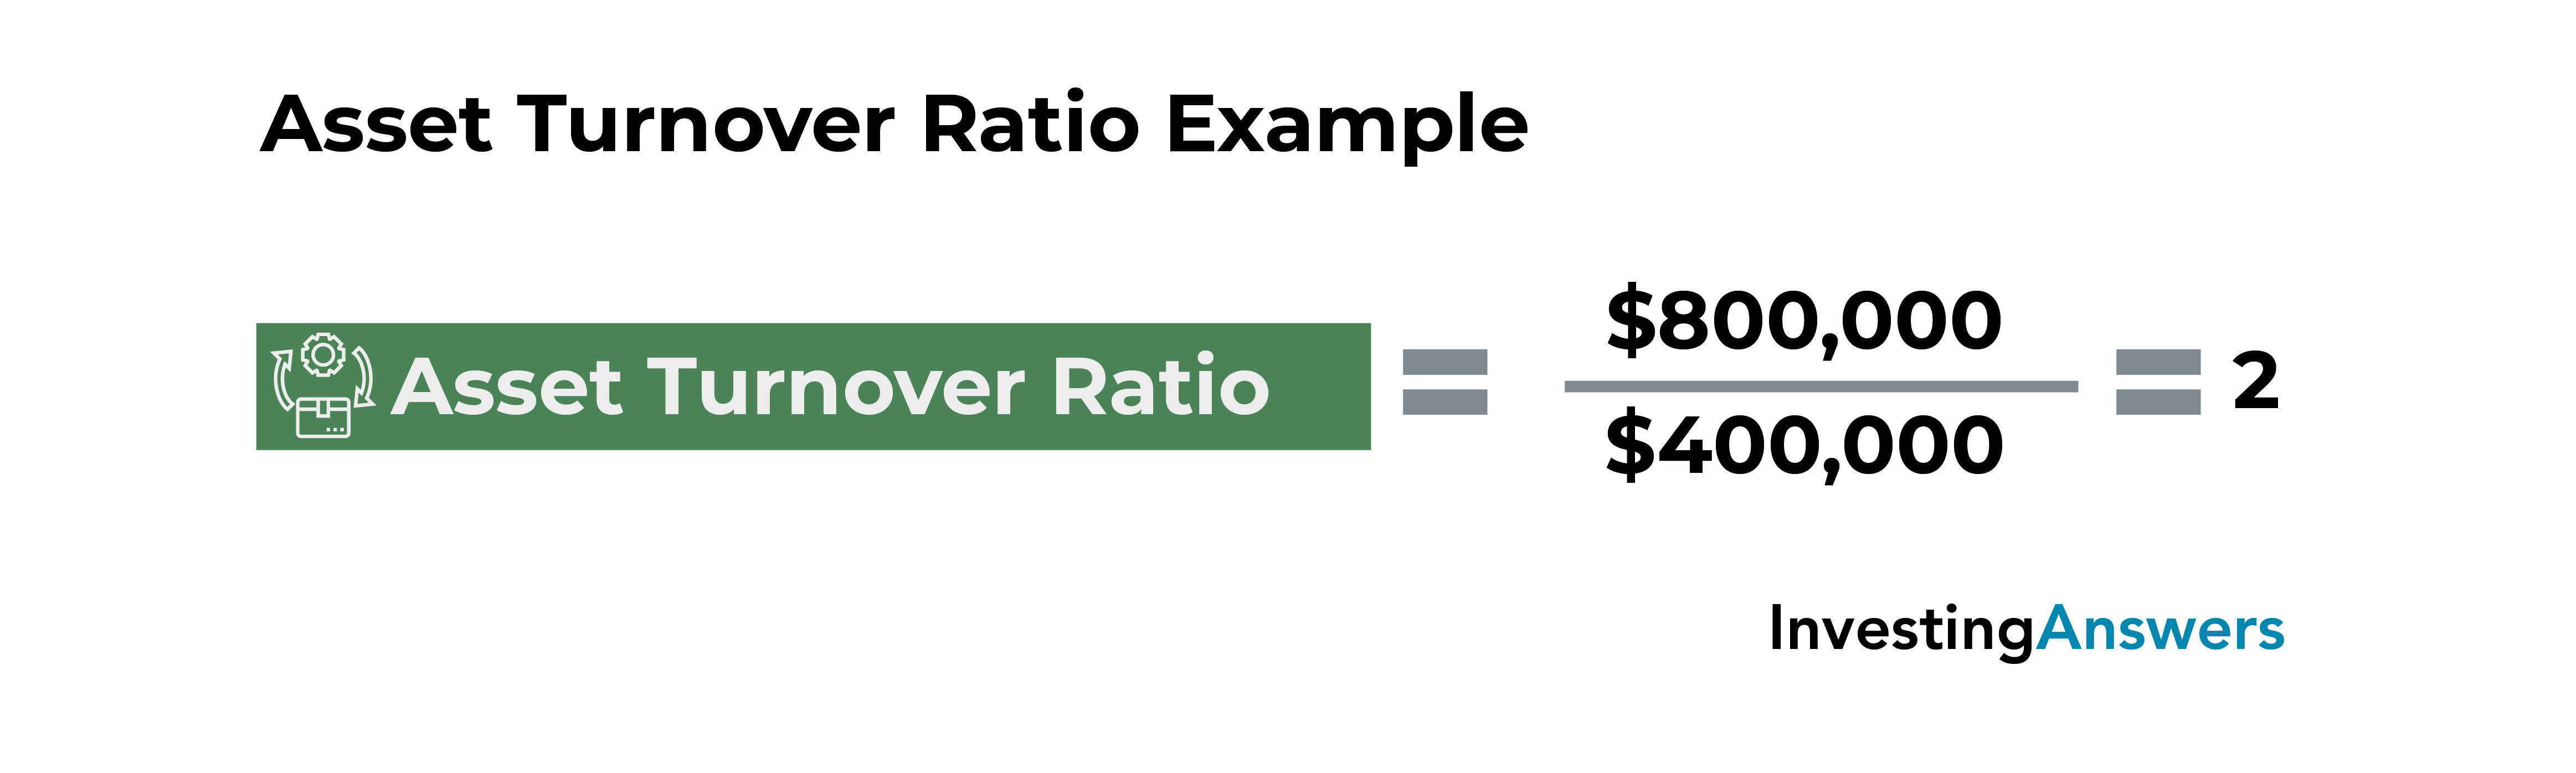 asset turnover ratio example